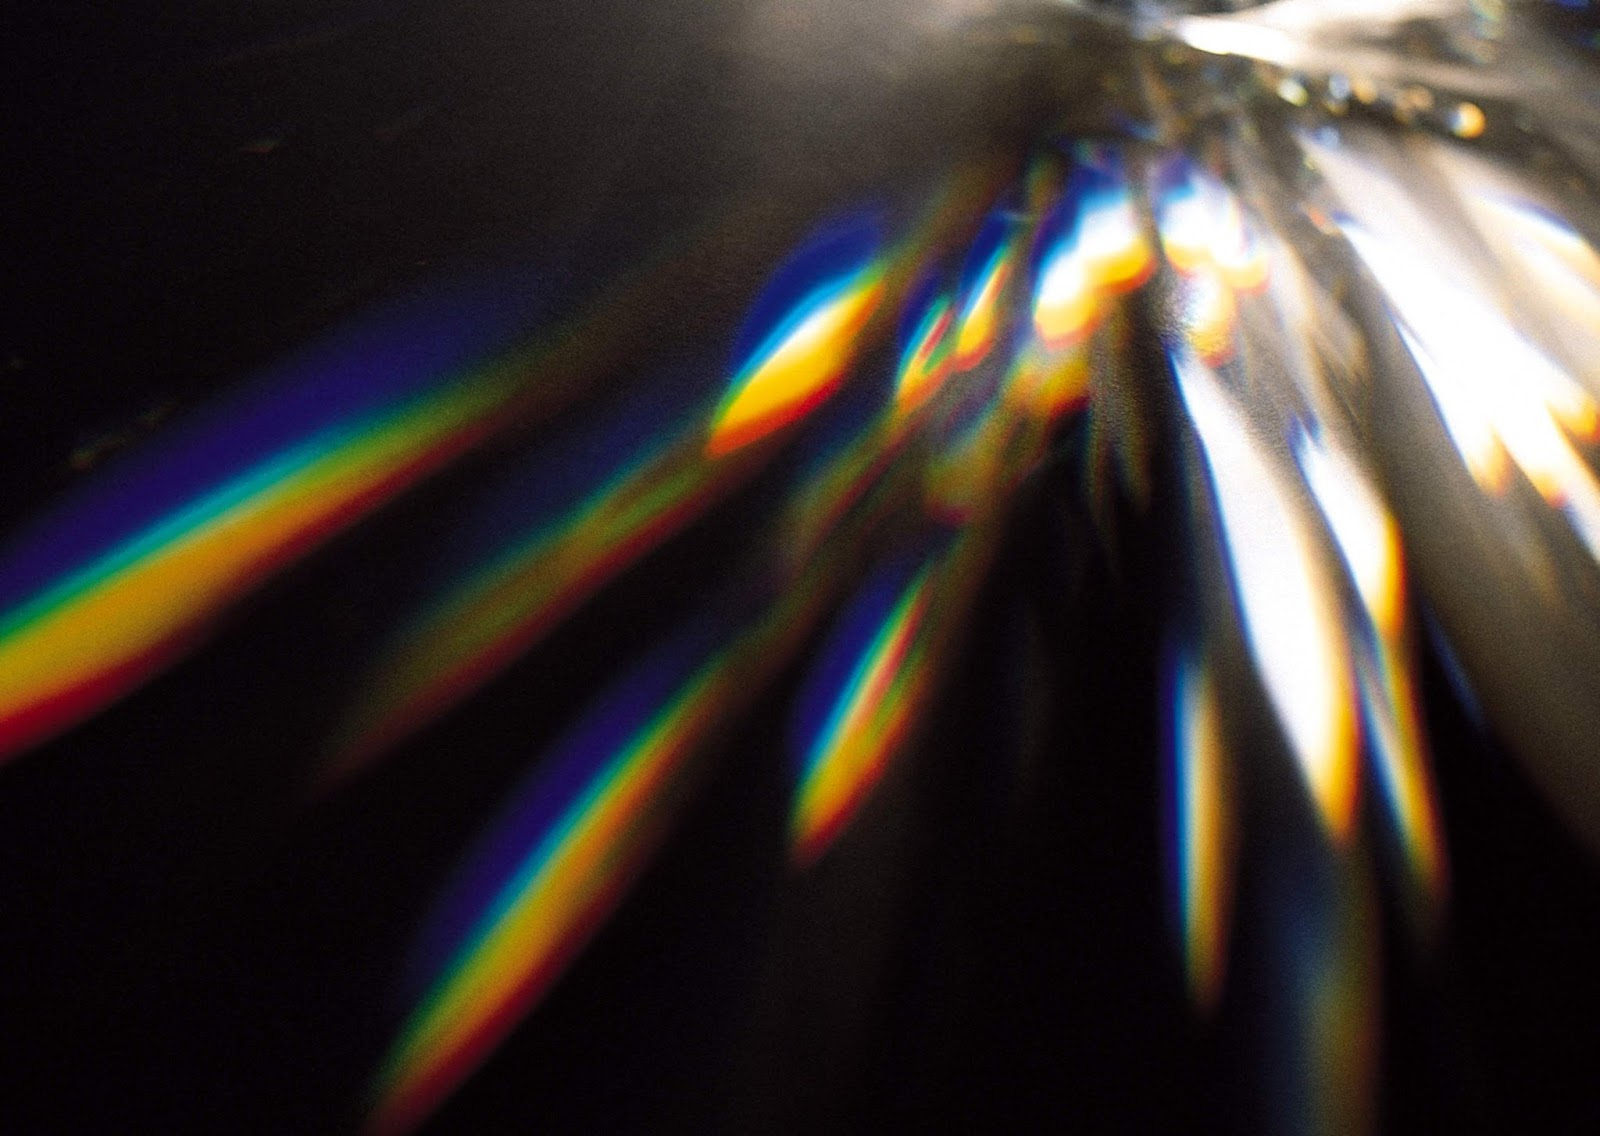 Free Hd Images Fifcu Purchased Crystal Reflection Images